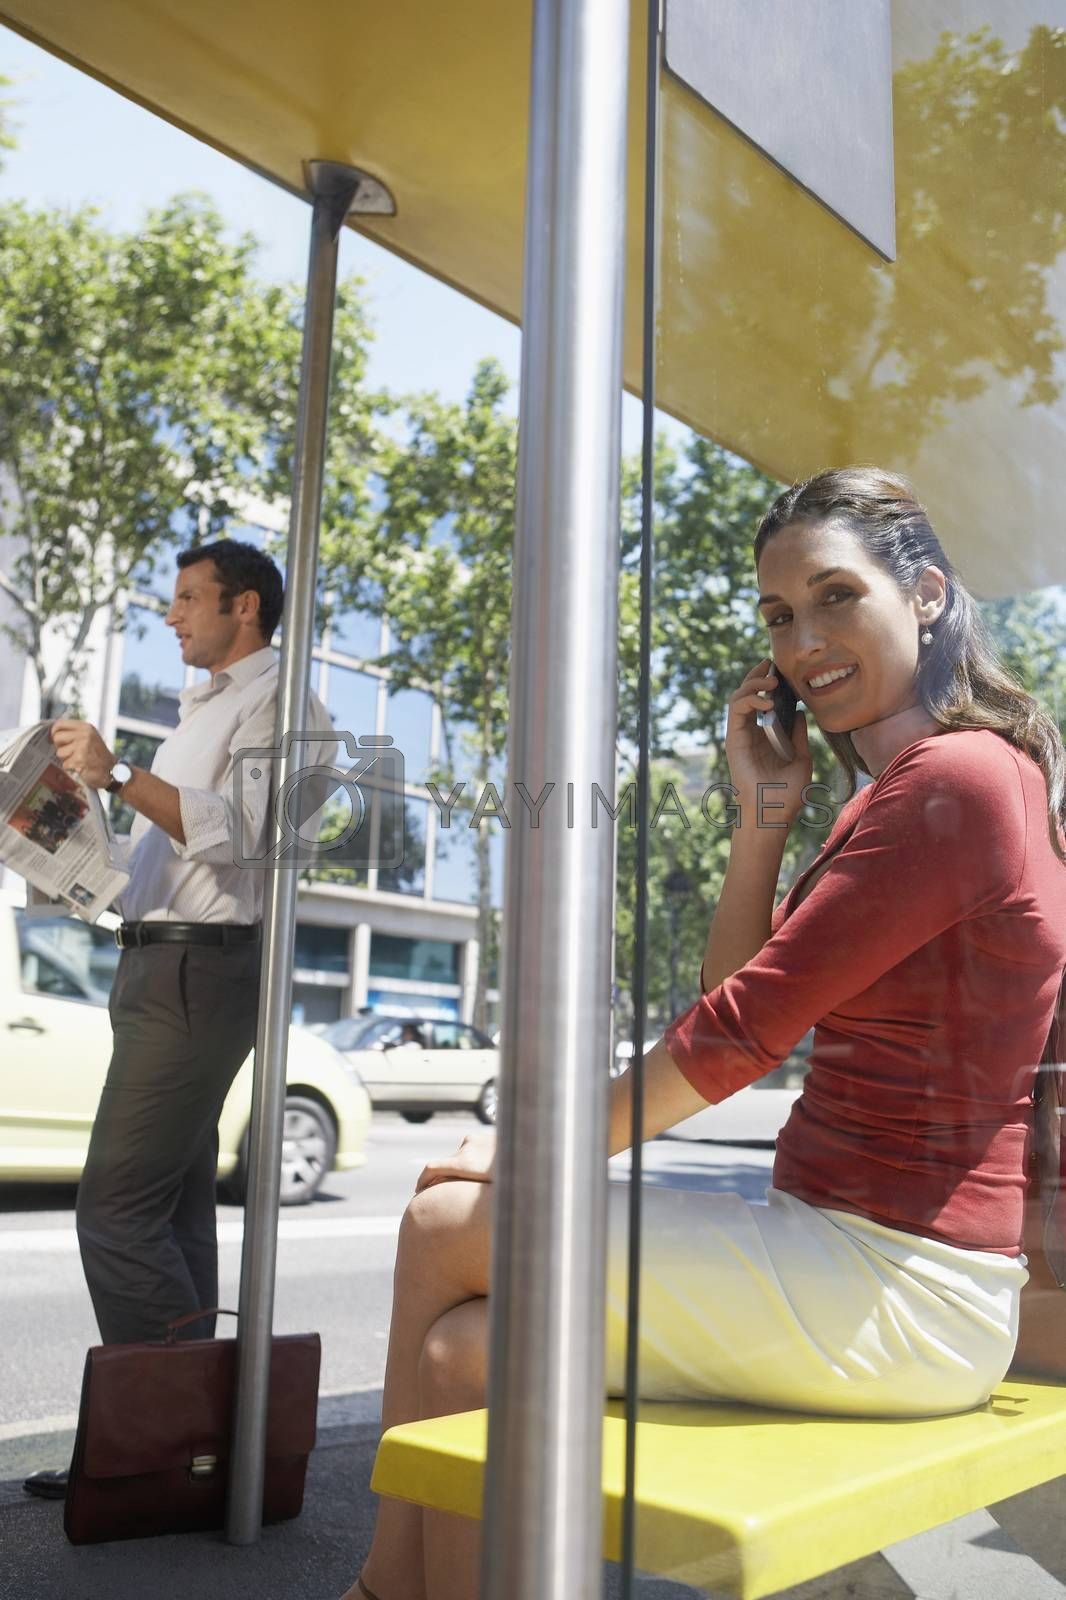 Portrait of a woman on a call while man waiting for a bus at bus stop by moodboard